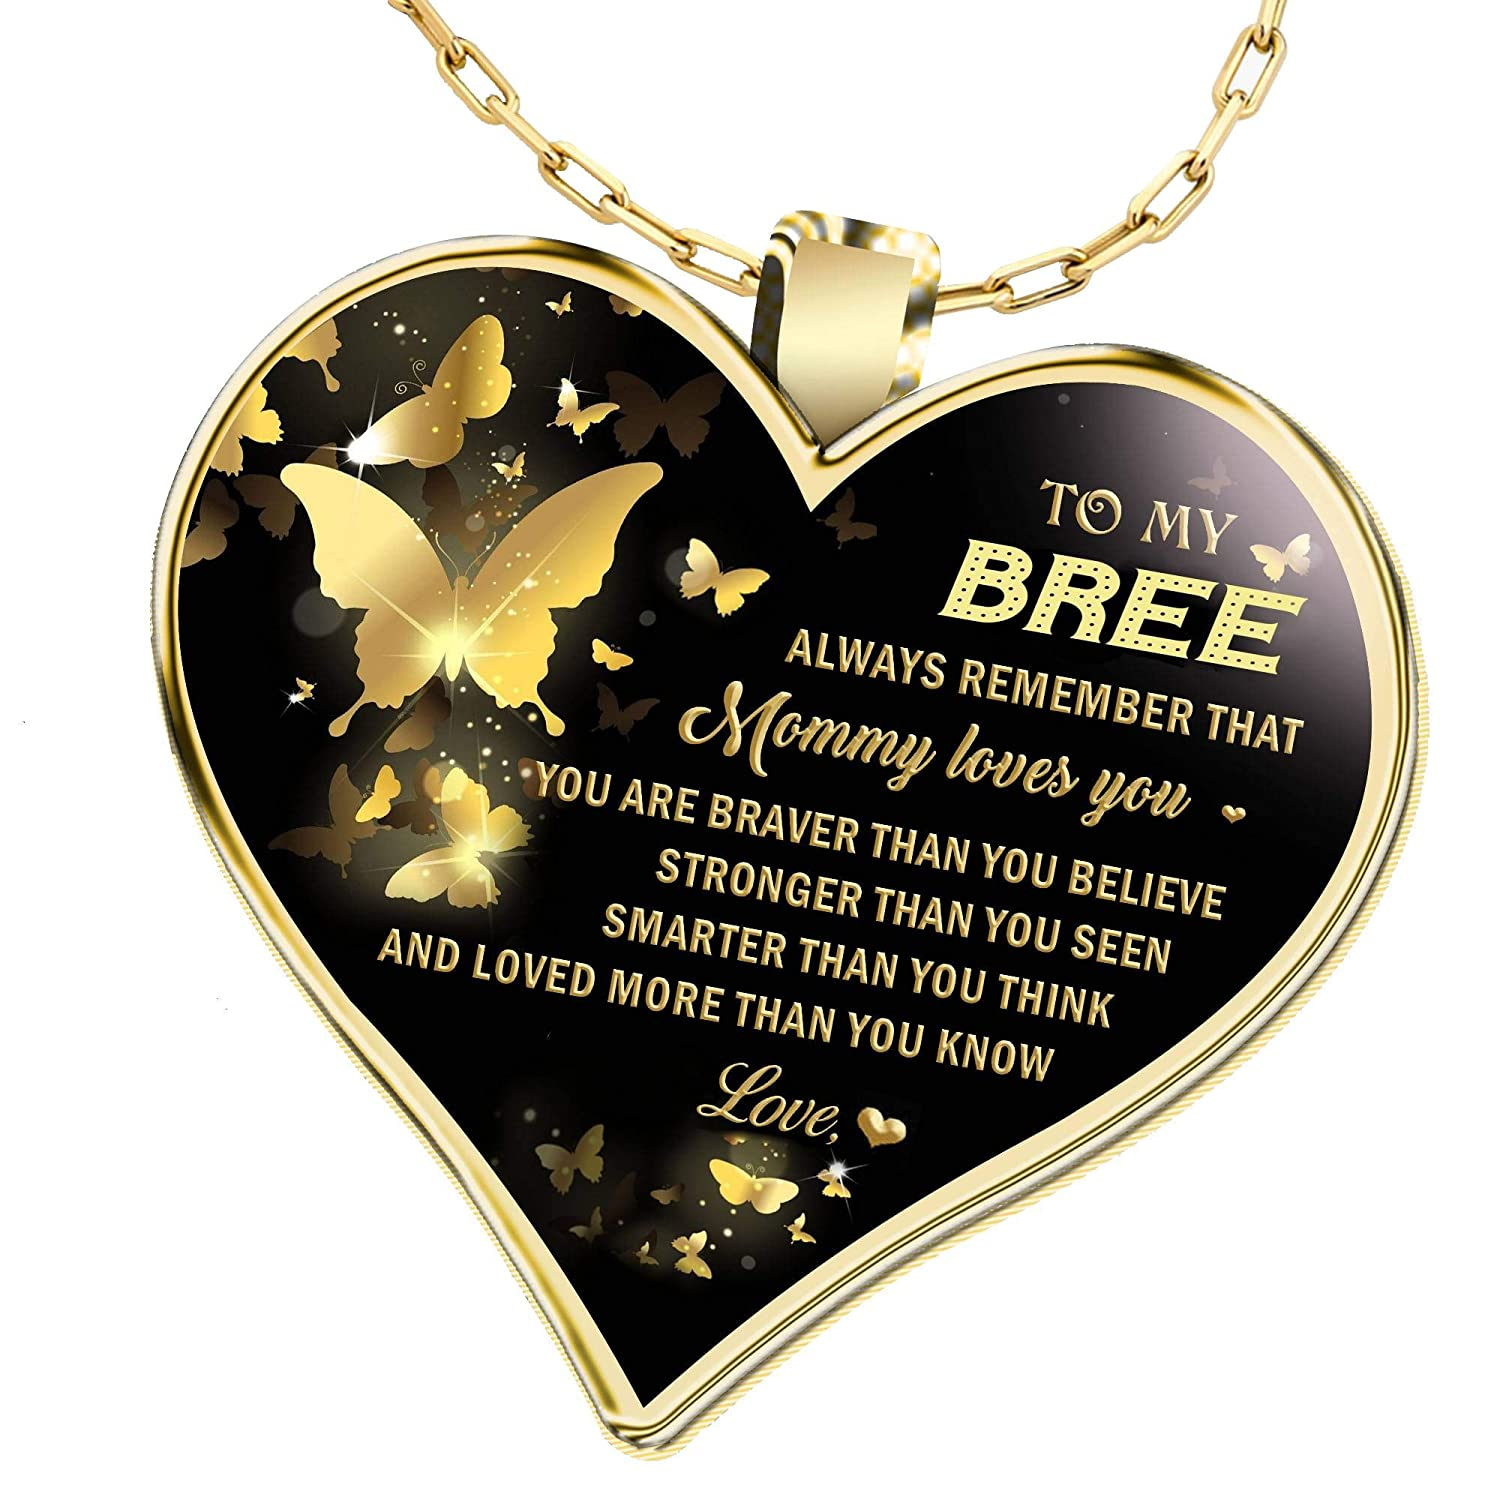 You are Braver Than You Believe for Mom Daughter Jewelry 18K Gold Plated Gifts Necklace Name for Wife to My Bree Always Remember That Mommy Love You